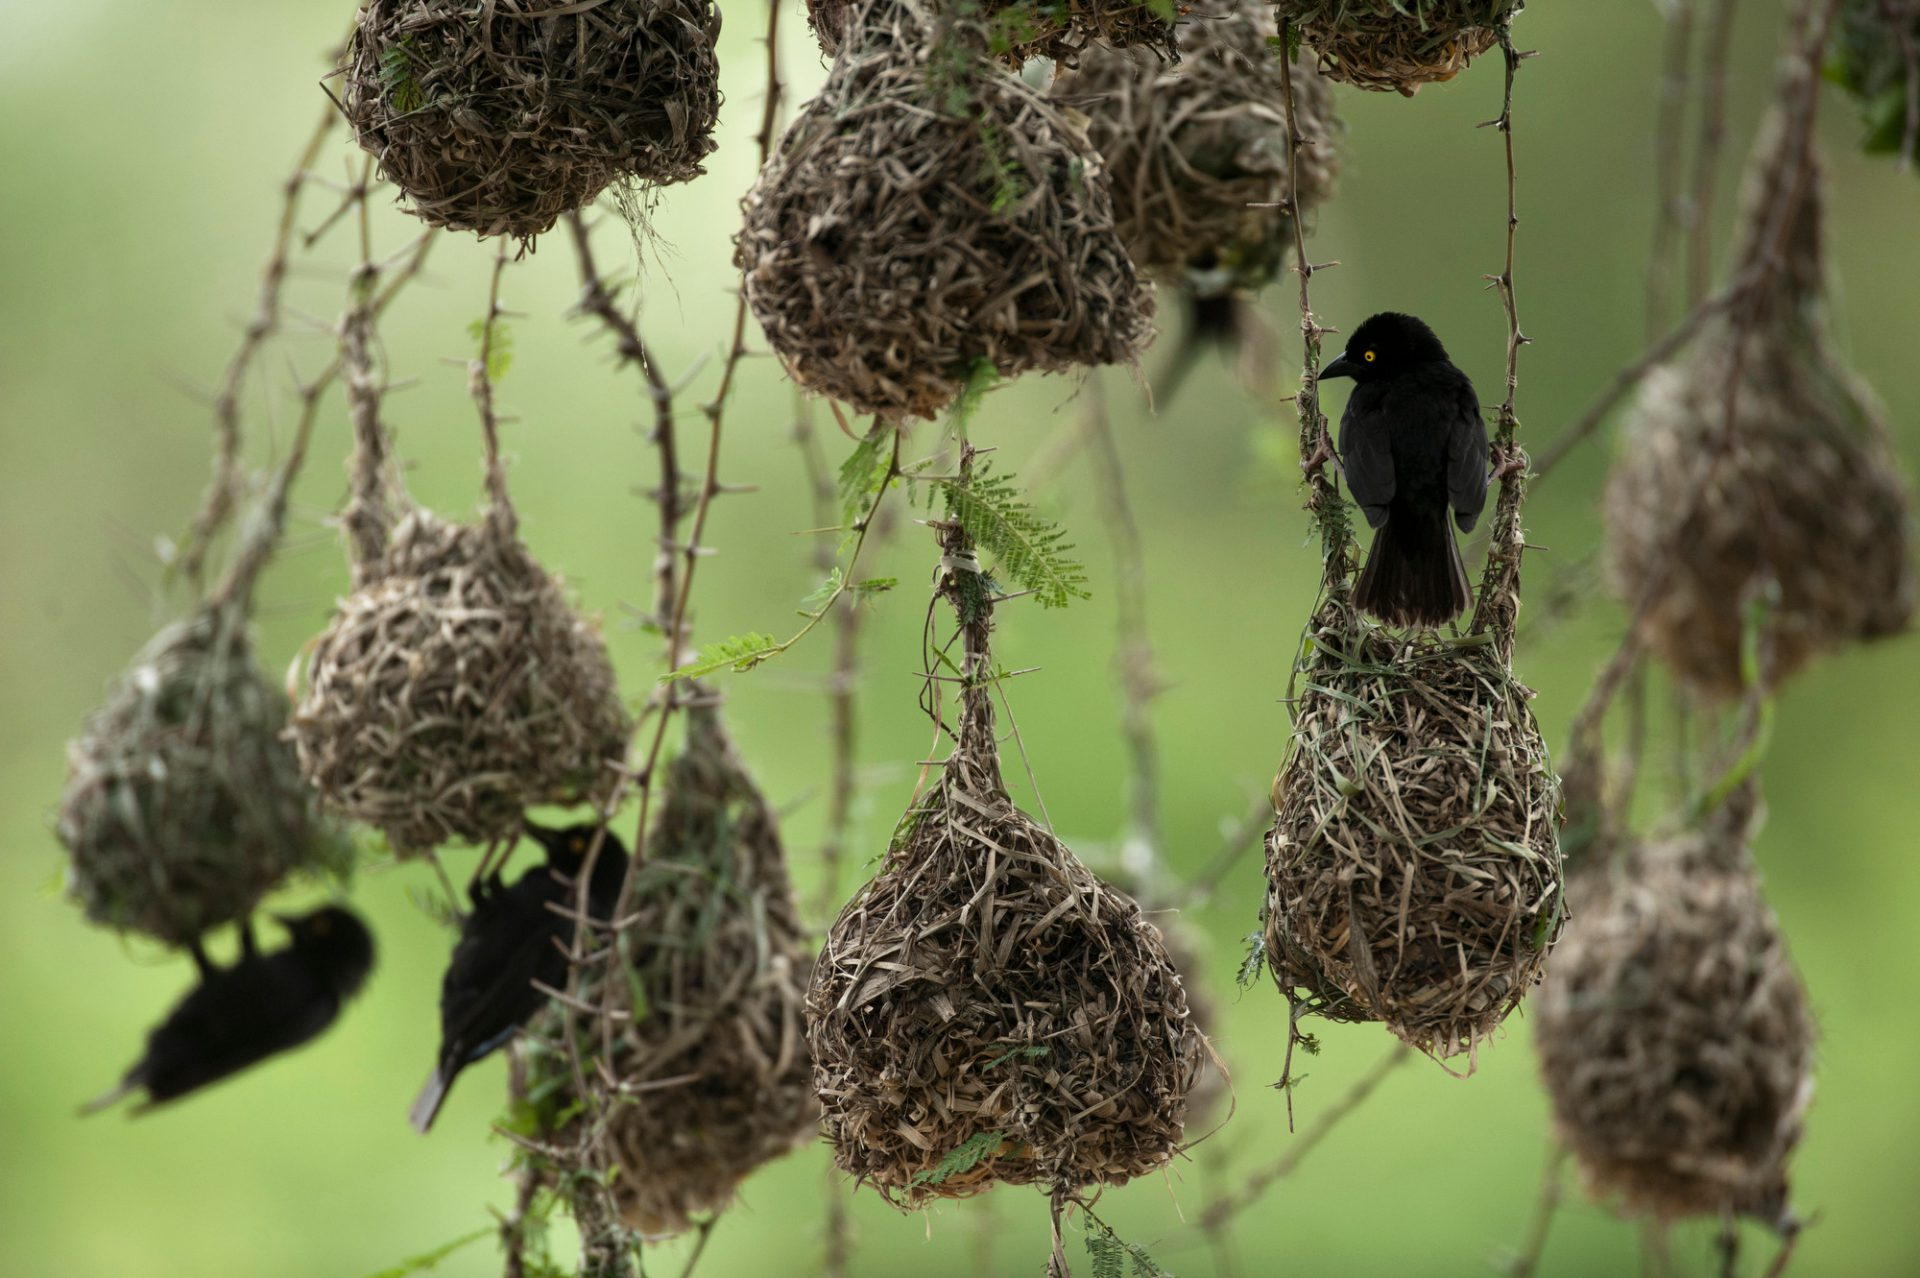 Photo: Weaver birds build nests inside Queen Elizabeth National Park.